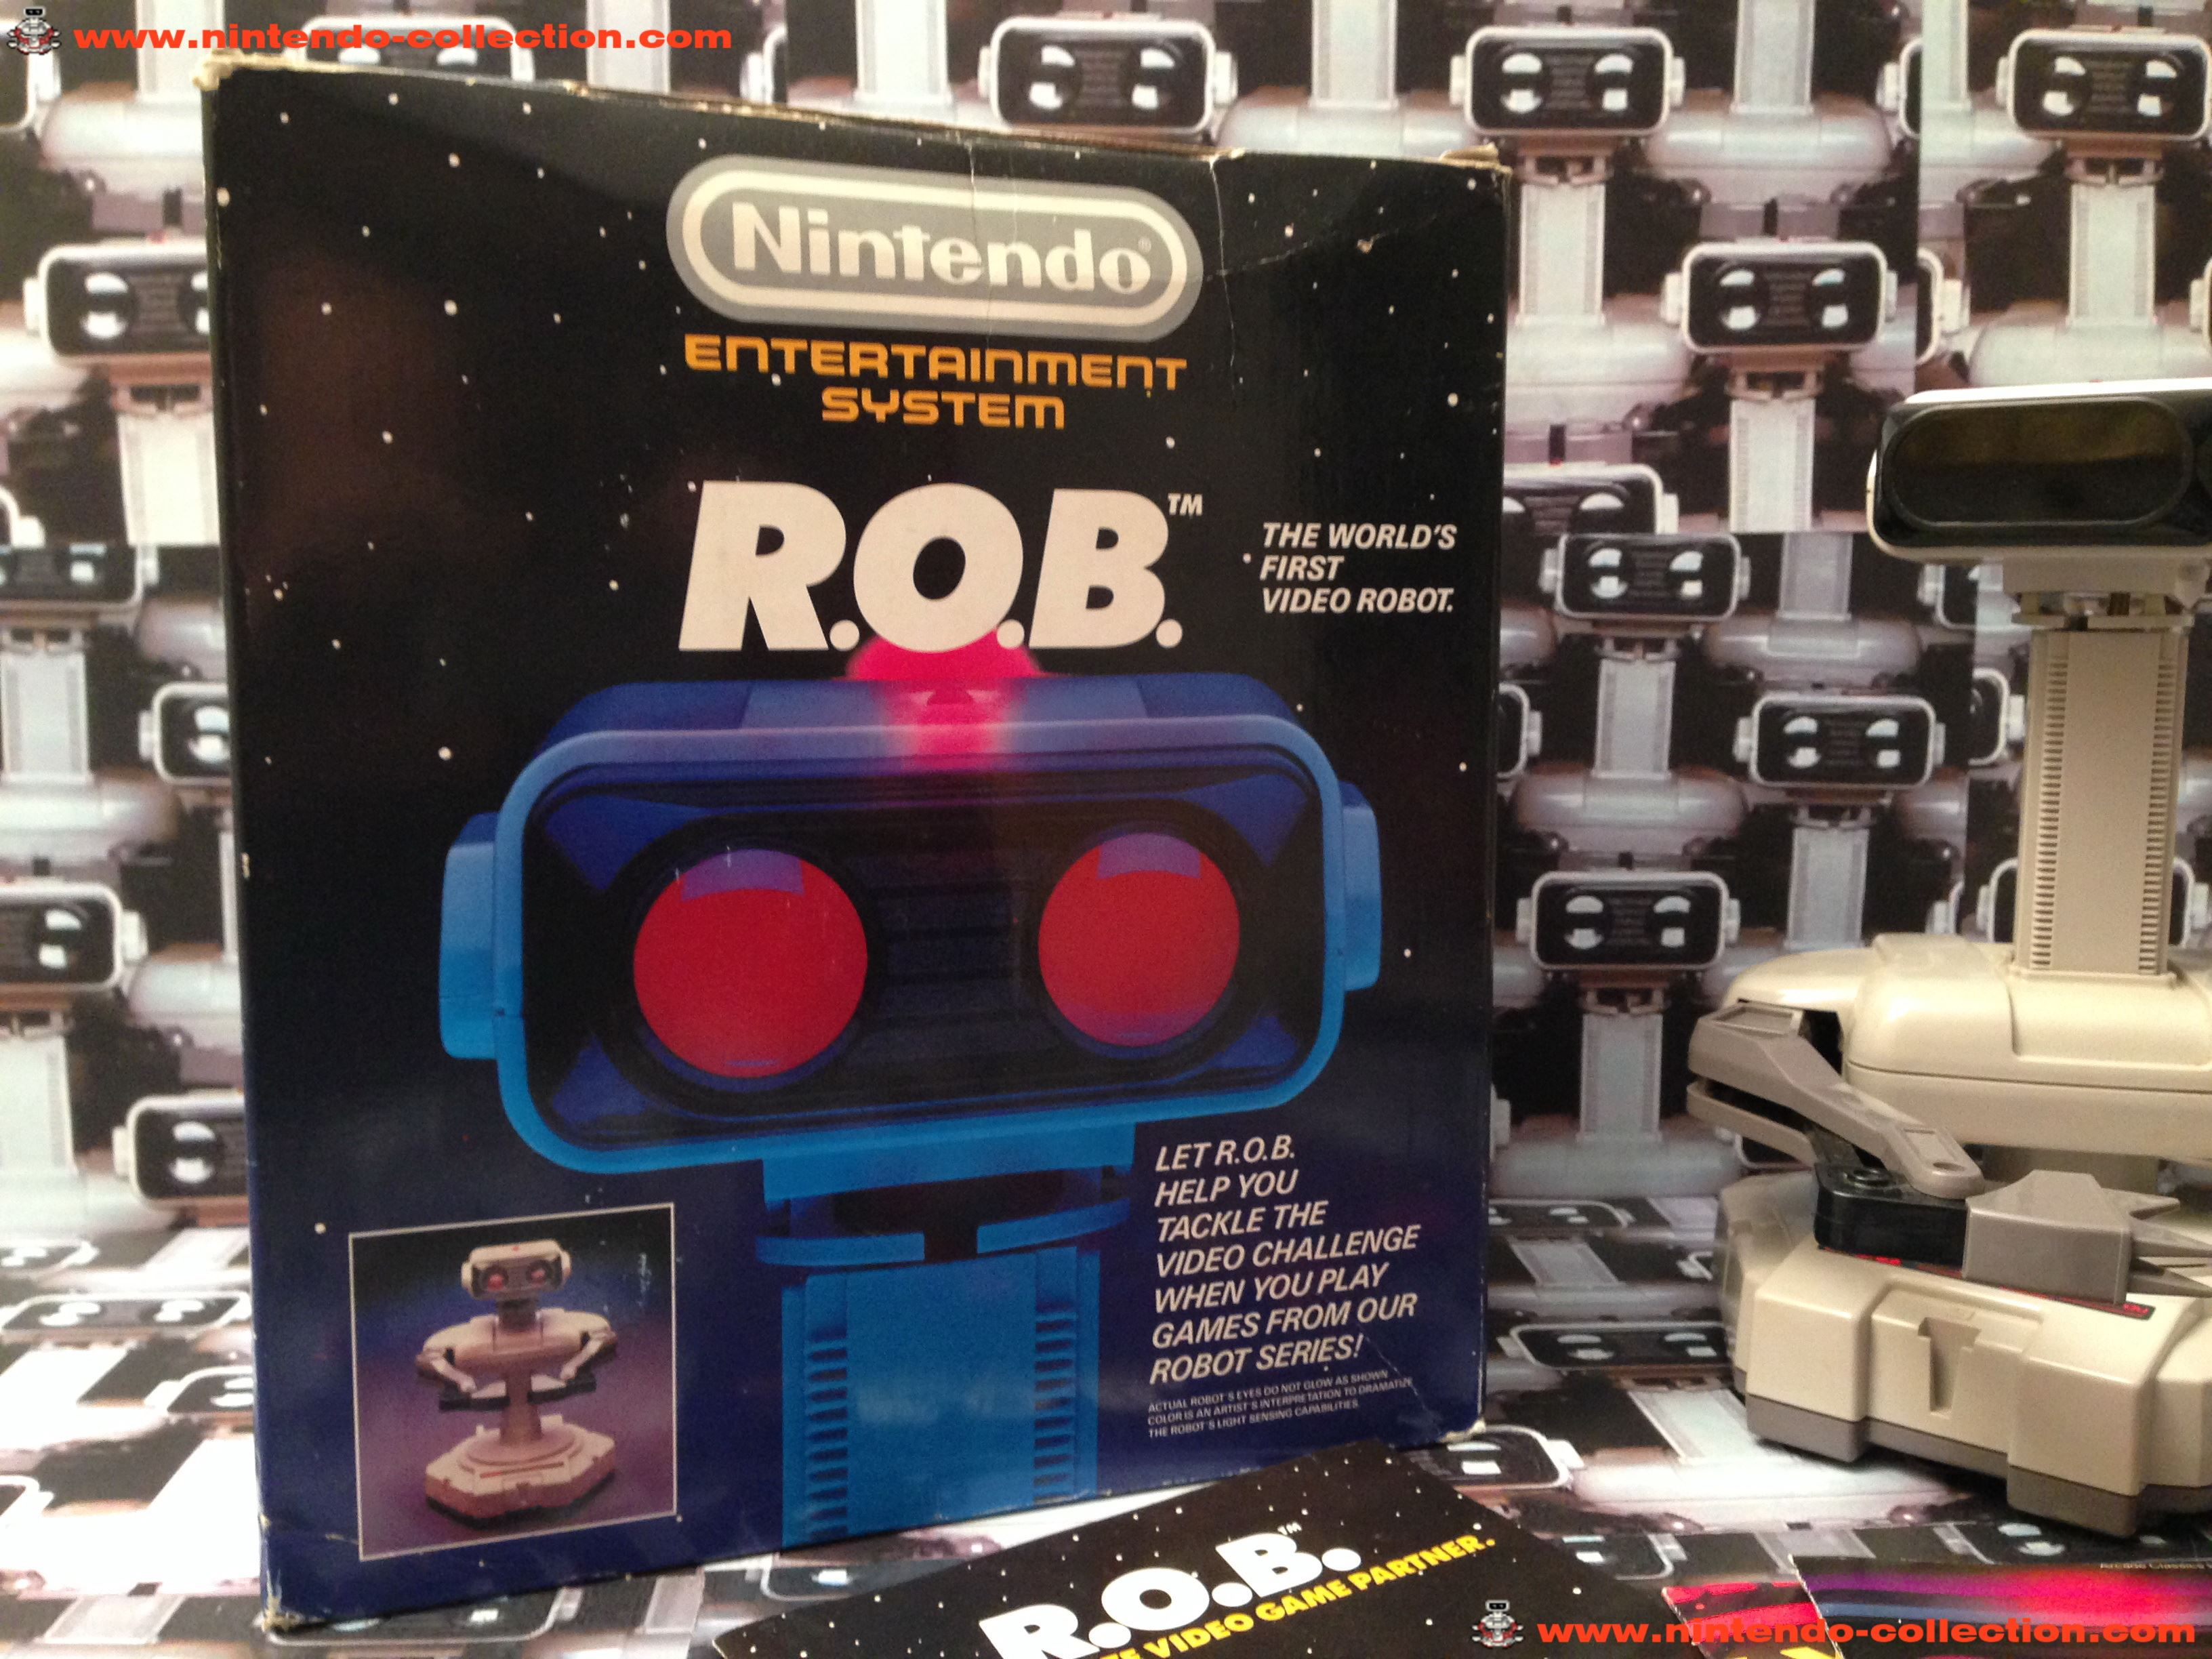 www.nintendo-collection.com - ROB NES en boite in box - 02